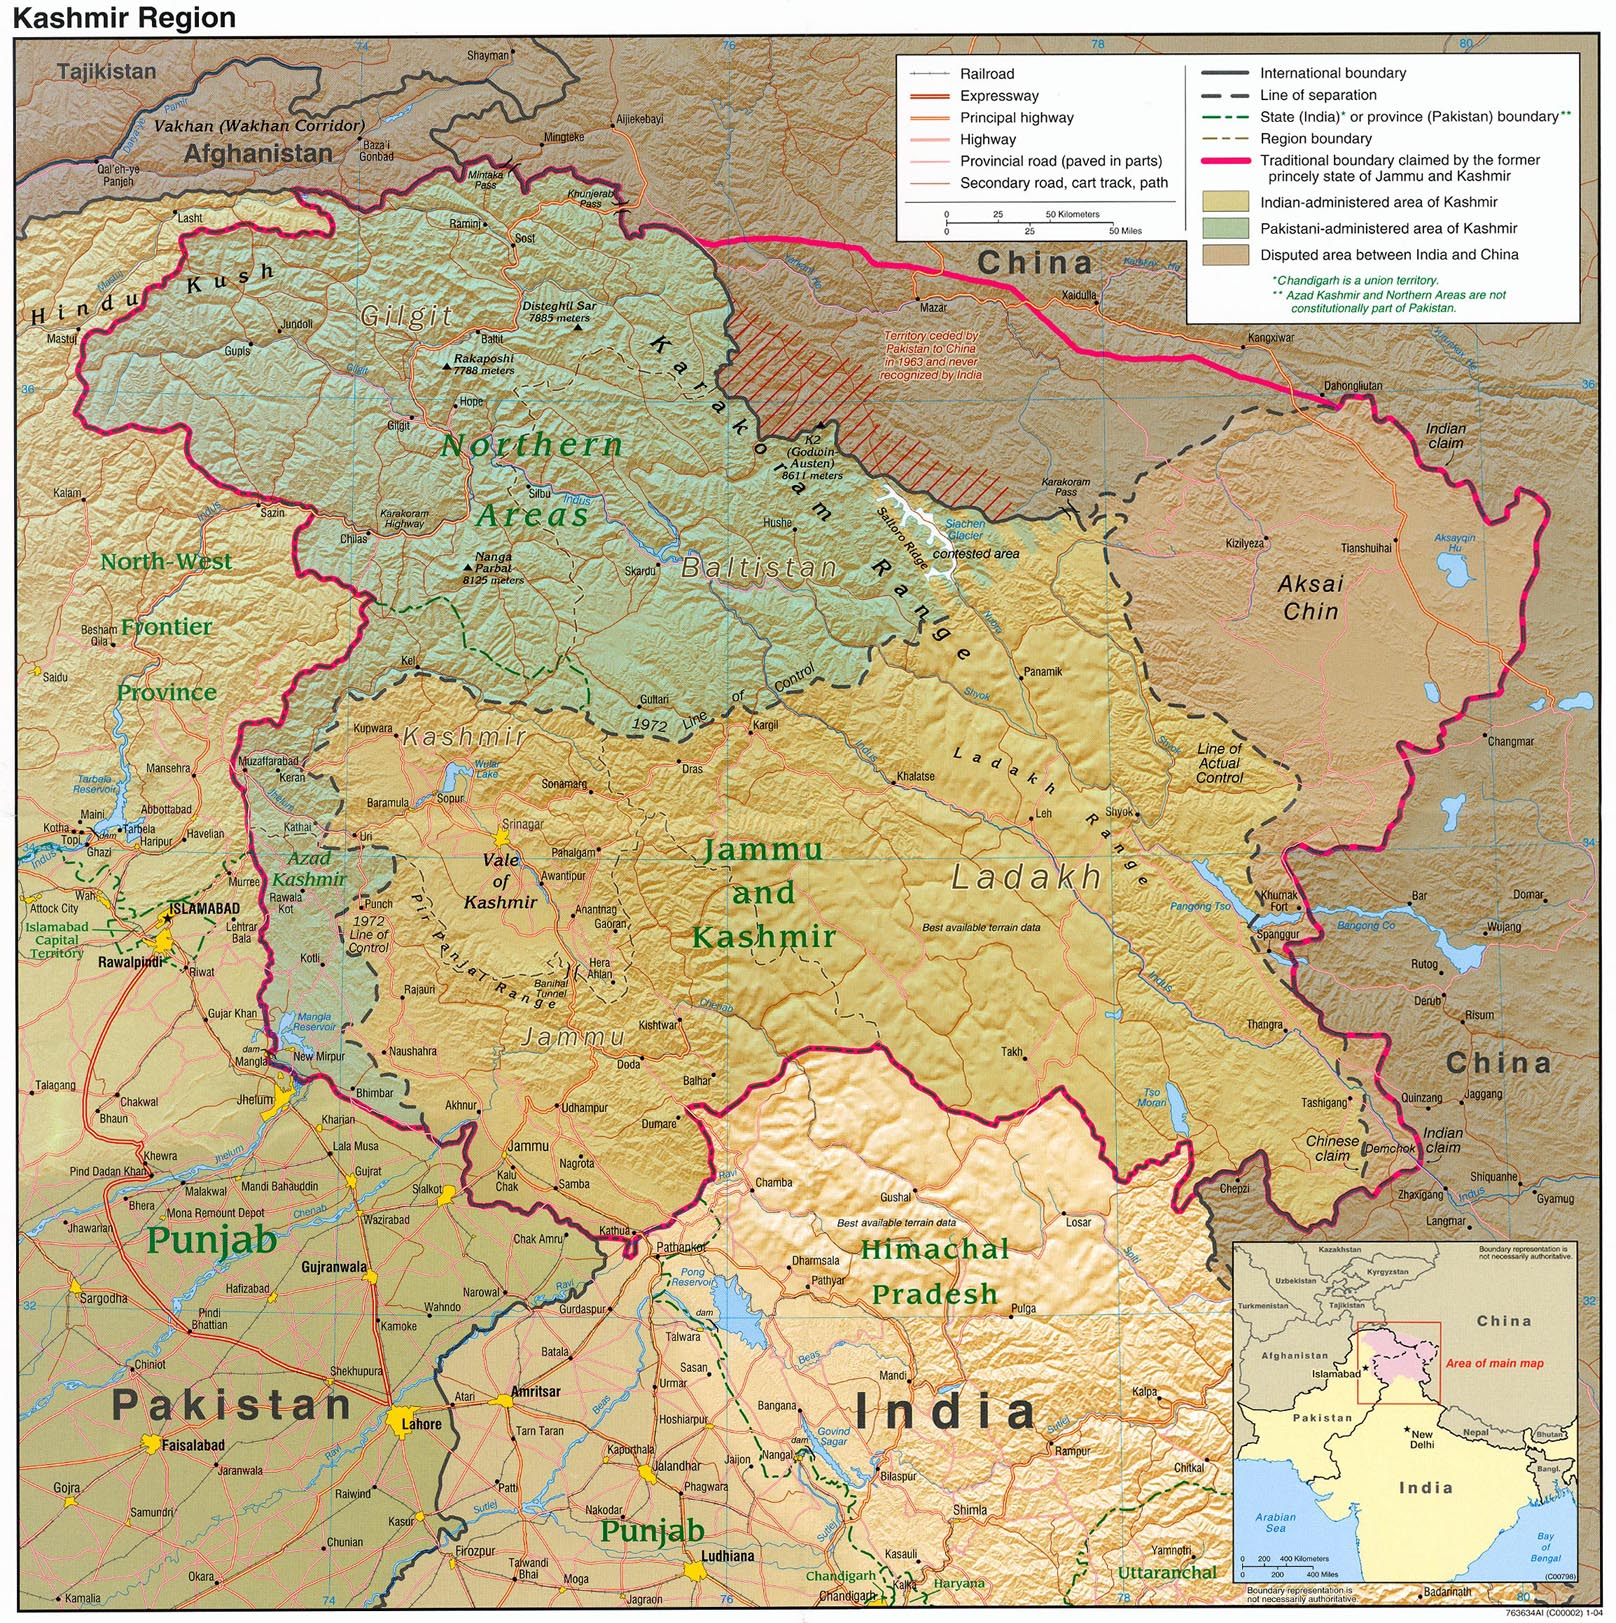 kashmir_region-map_2004.jpg